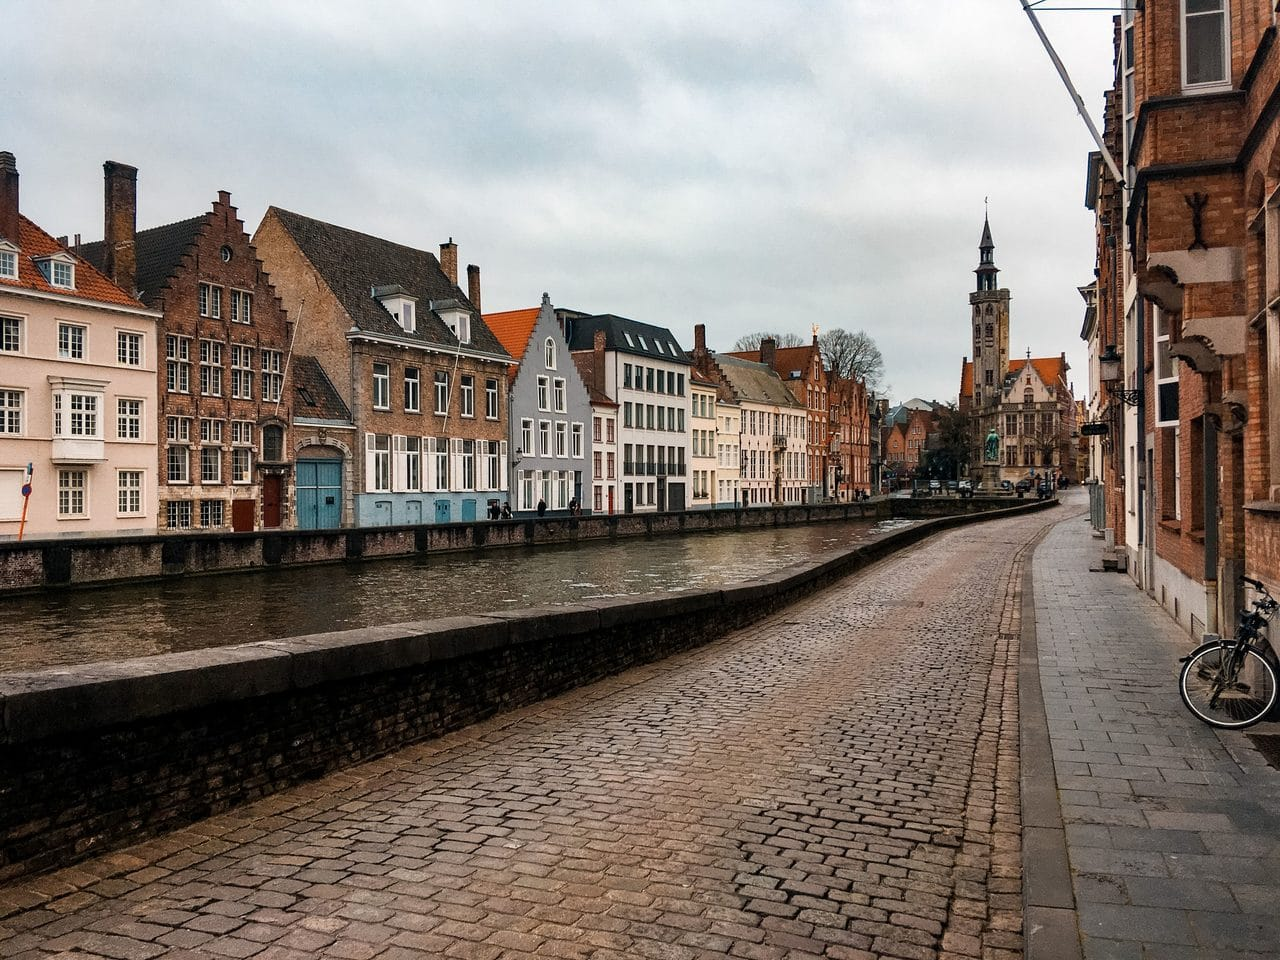 Bruges/Brugge cobbled streets and canal